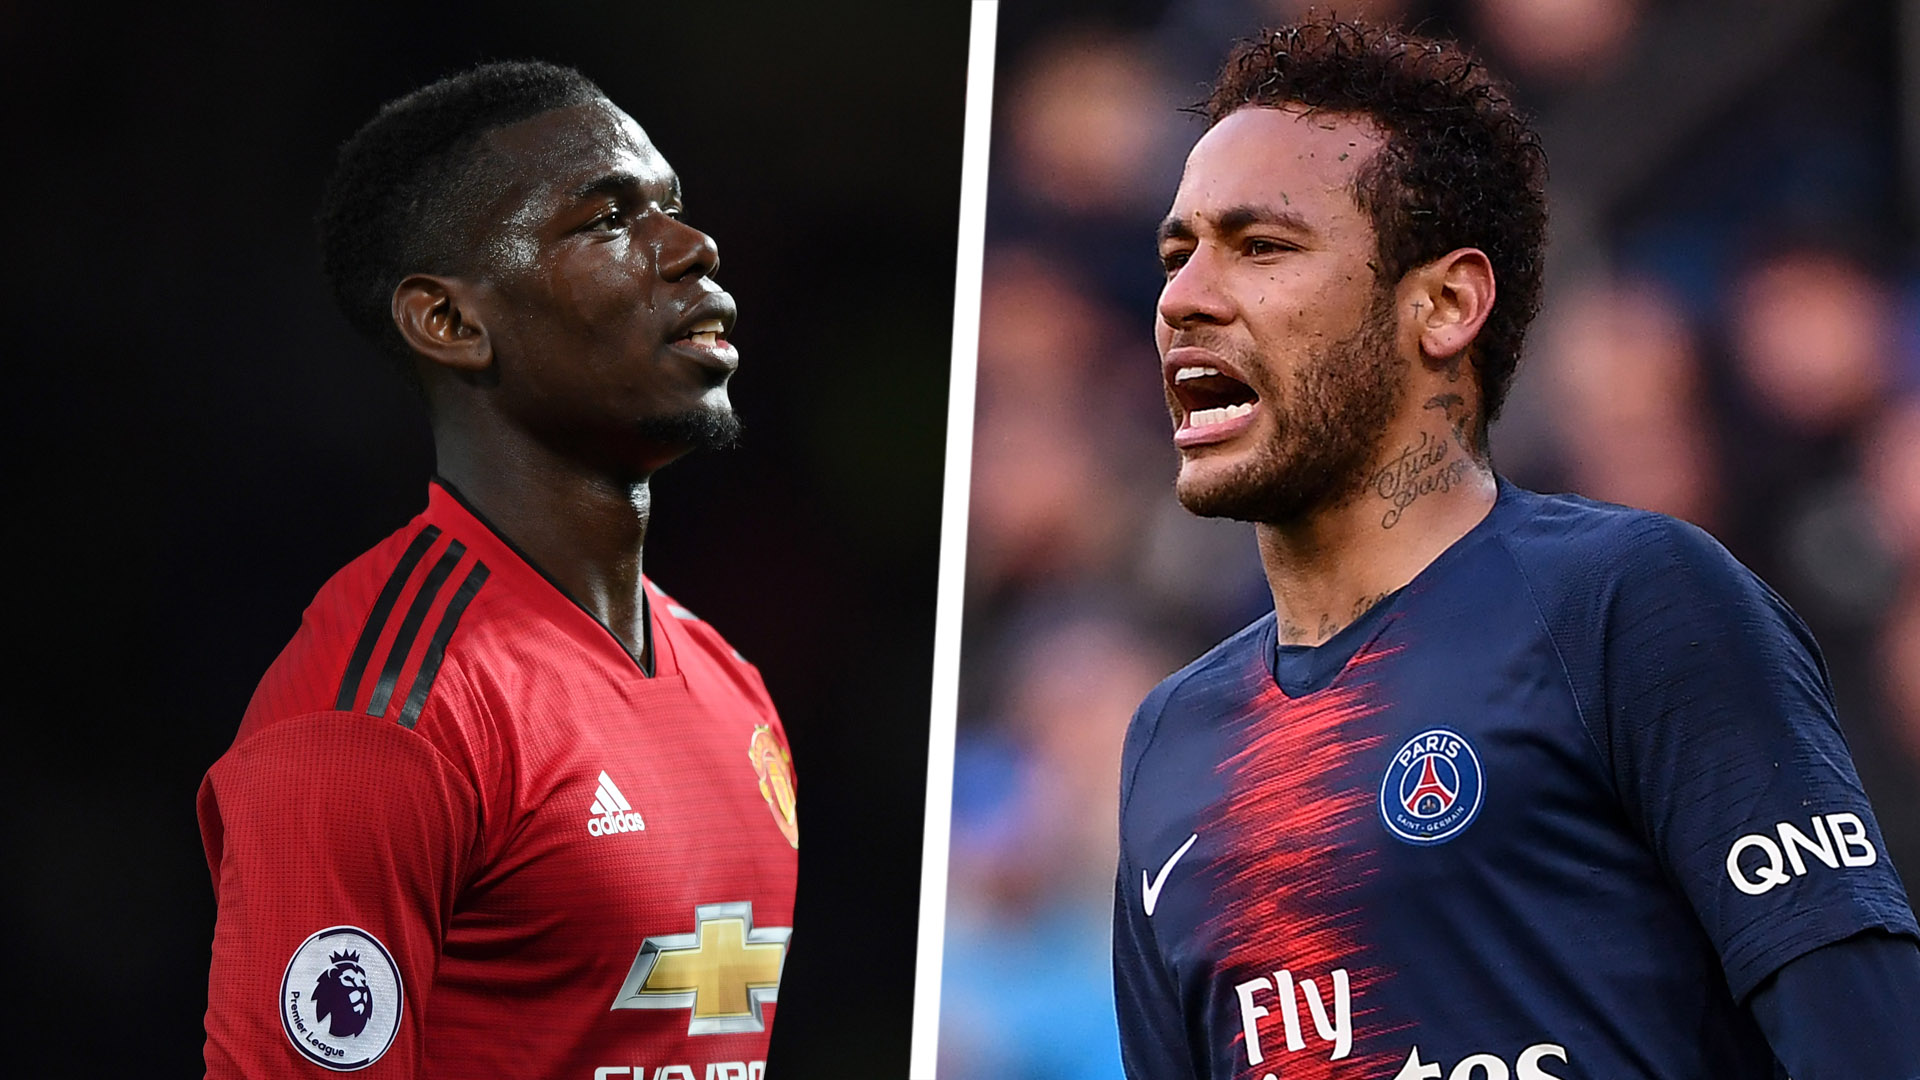 Transfer news and rumours LIVE: Man Utd reject Pogba and Neymar swap deal